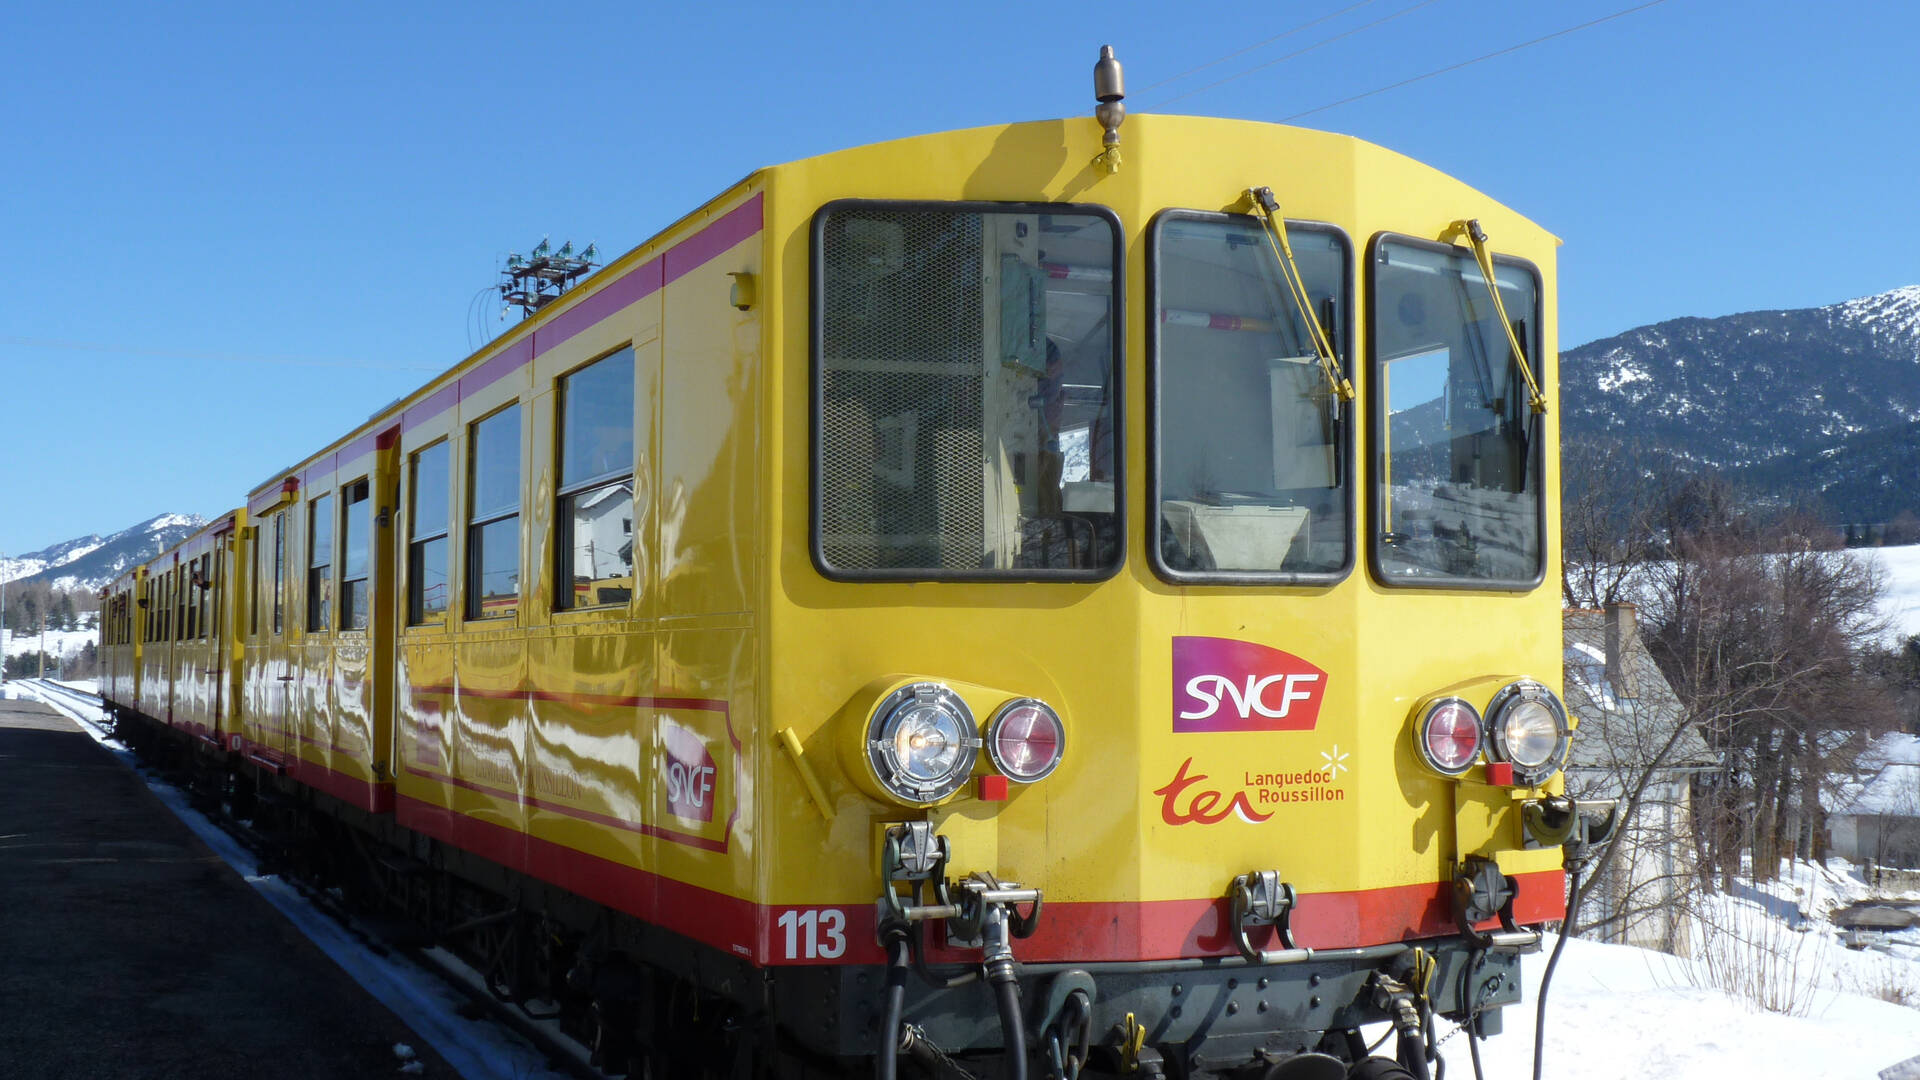 The yellow train in winter